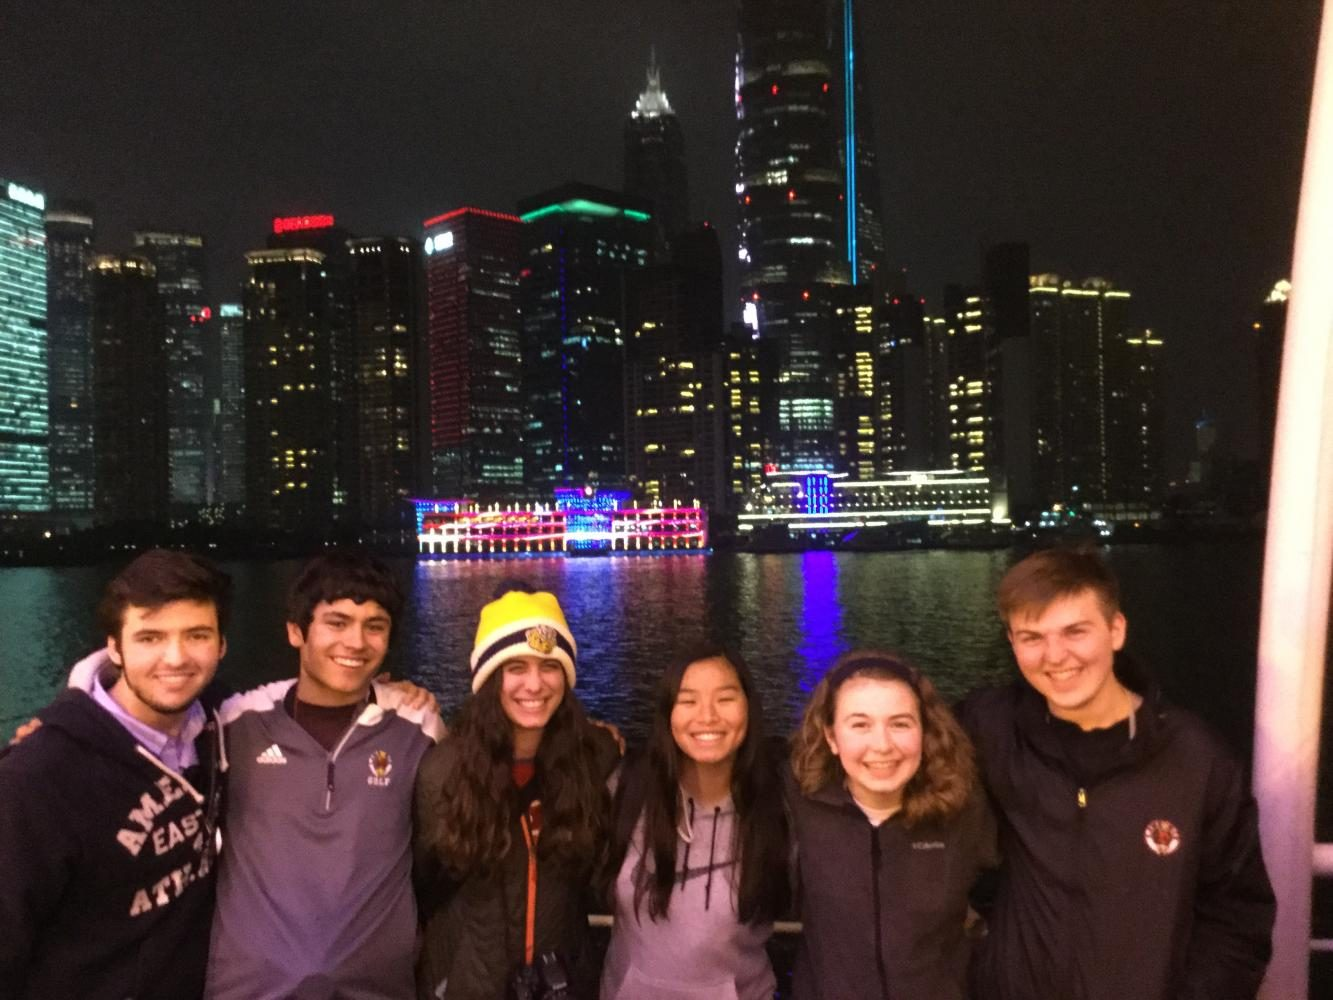 Smiling+wide+%E2%80%94+Students+pose+in+front+of+the+Bund+waterfront+in+Shanghai.+Platt+took+his+group+to+many+other+iconic+Chinese+landmarks.+